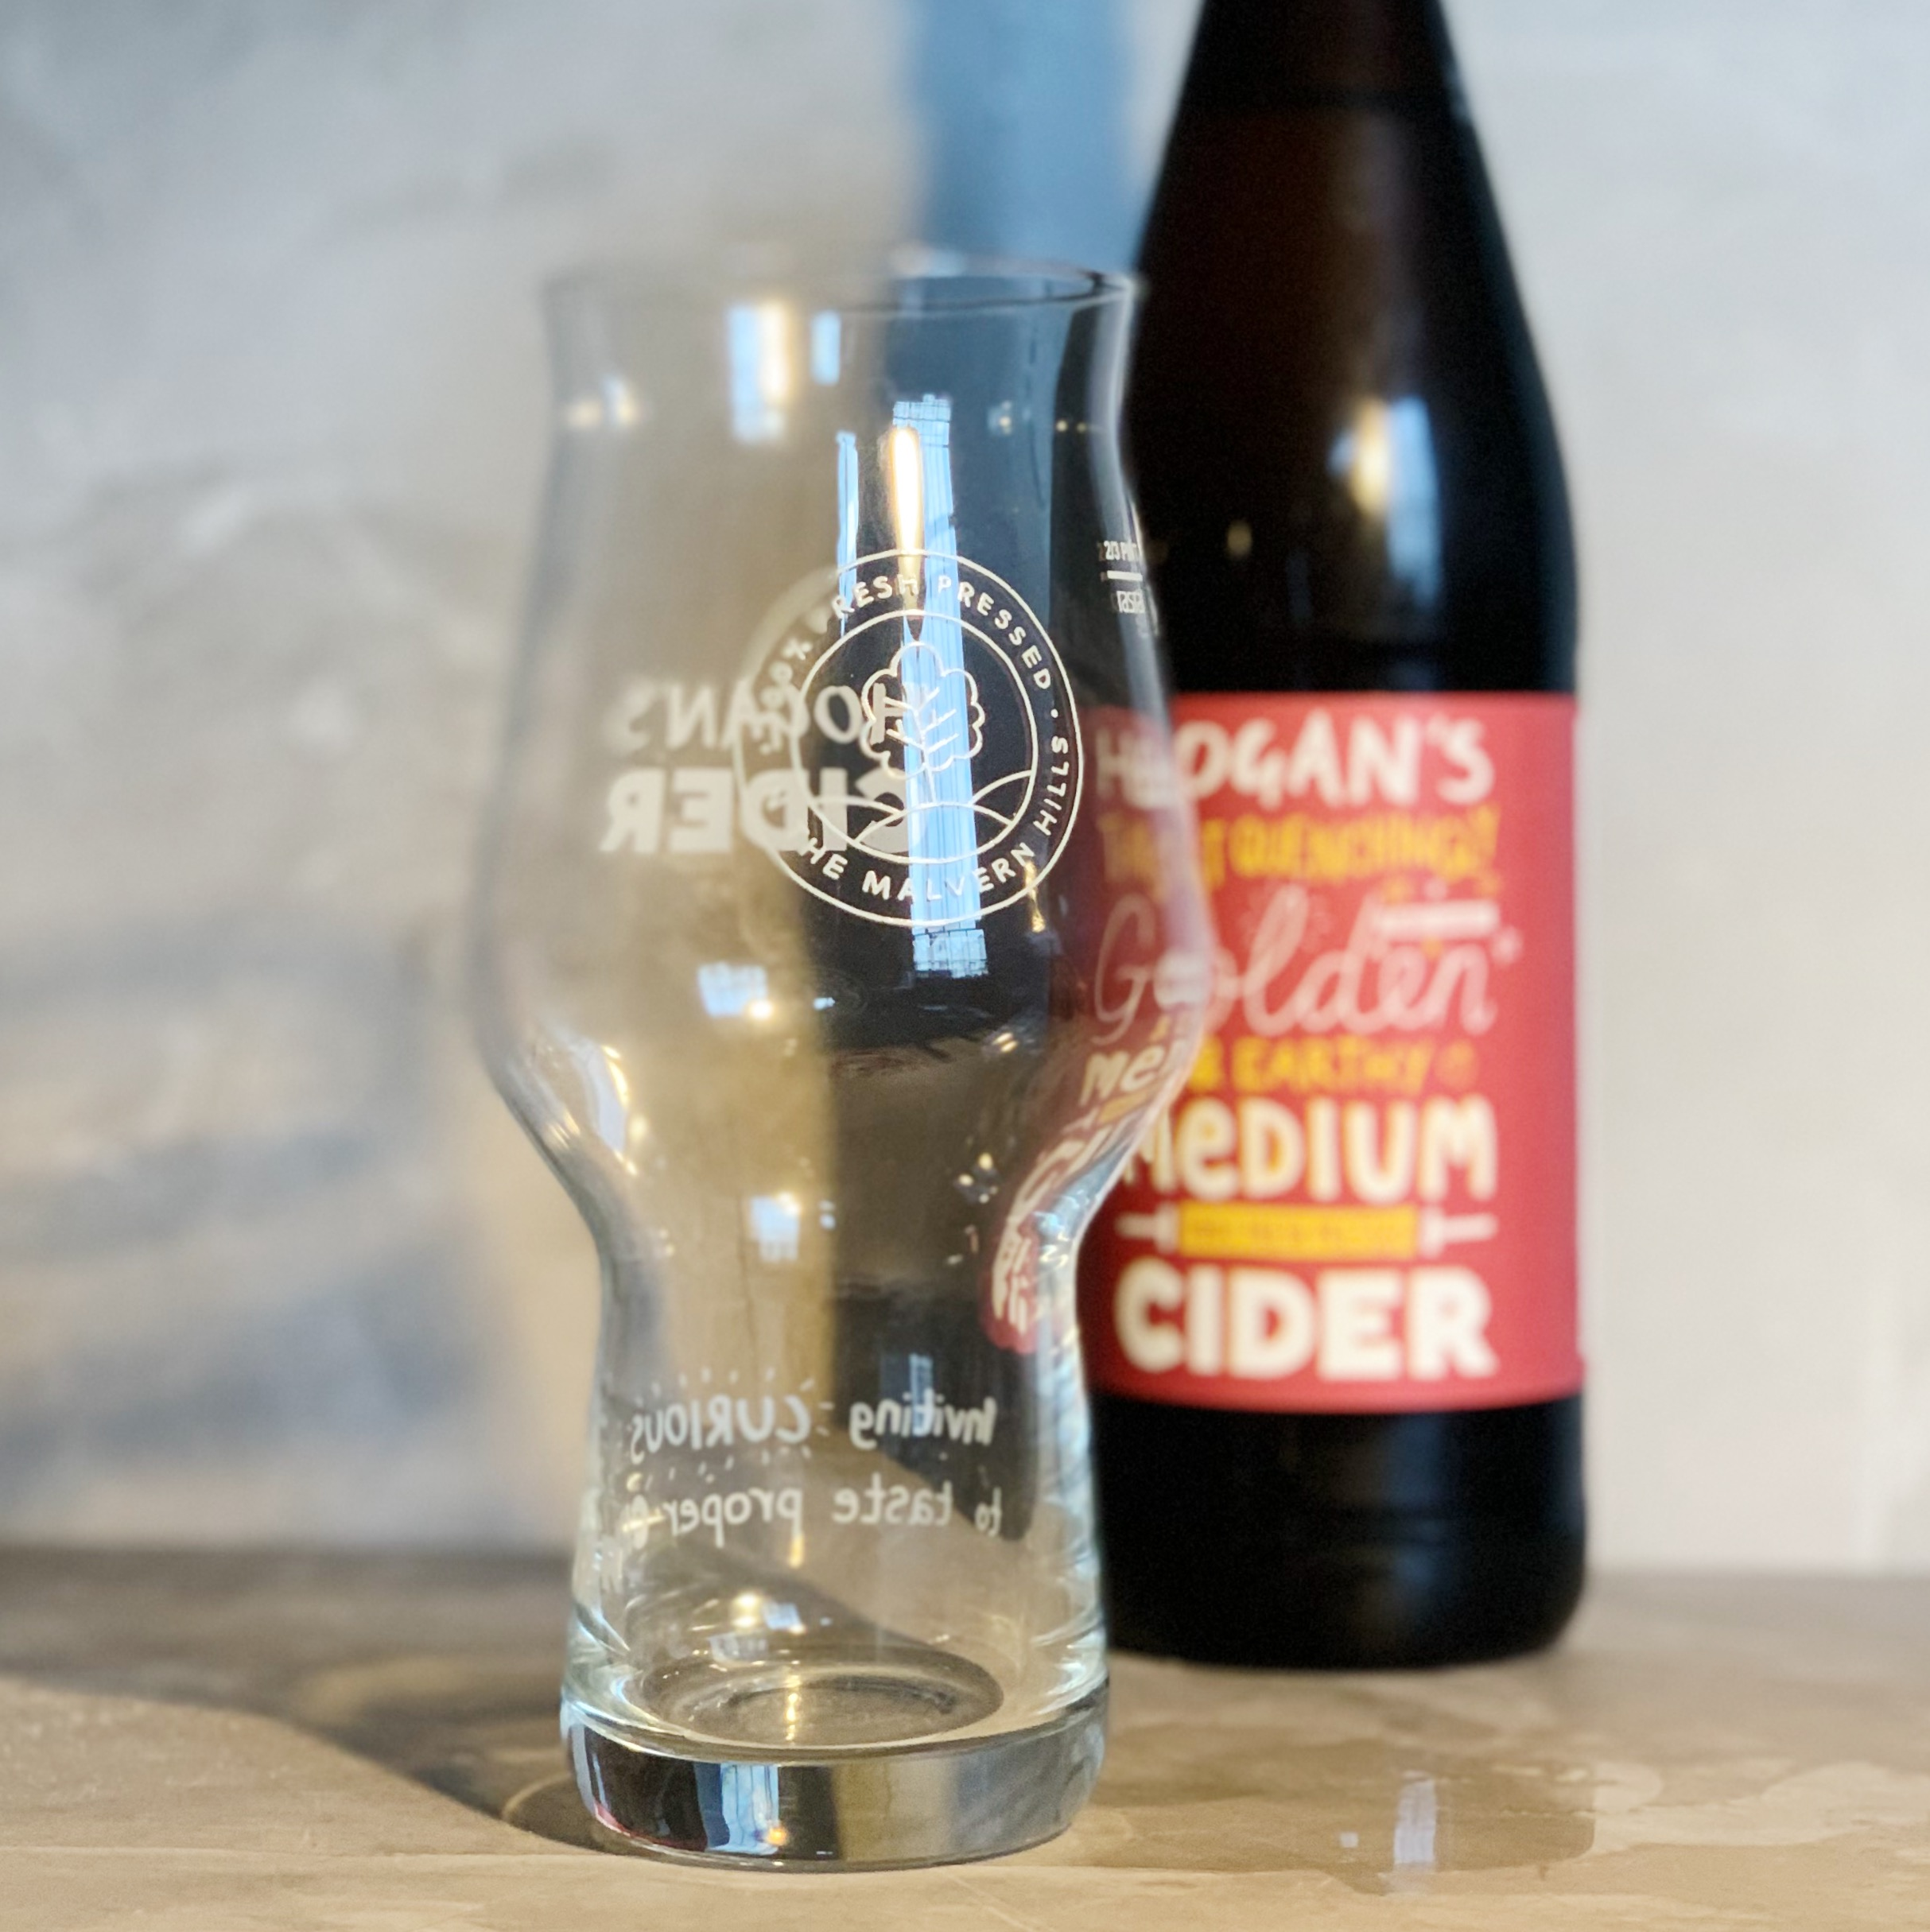 HOGAN'S CIDER GLASS